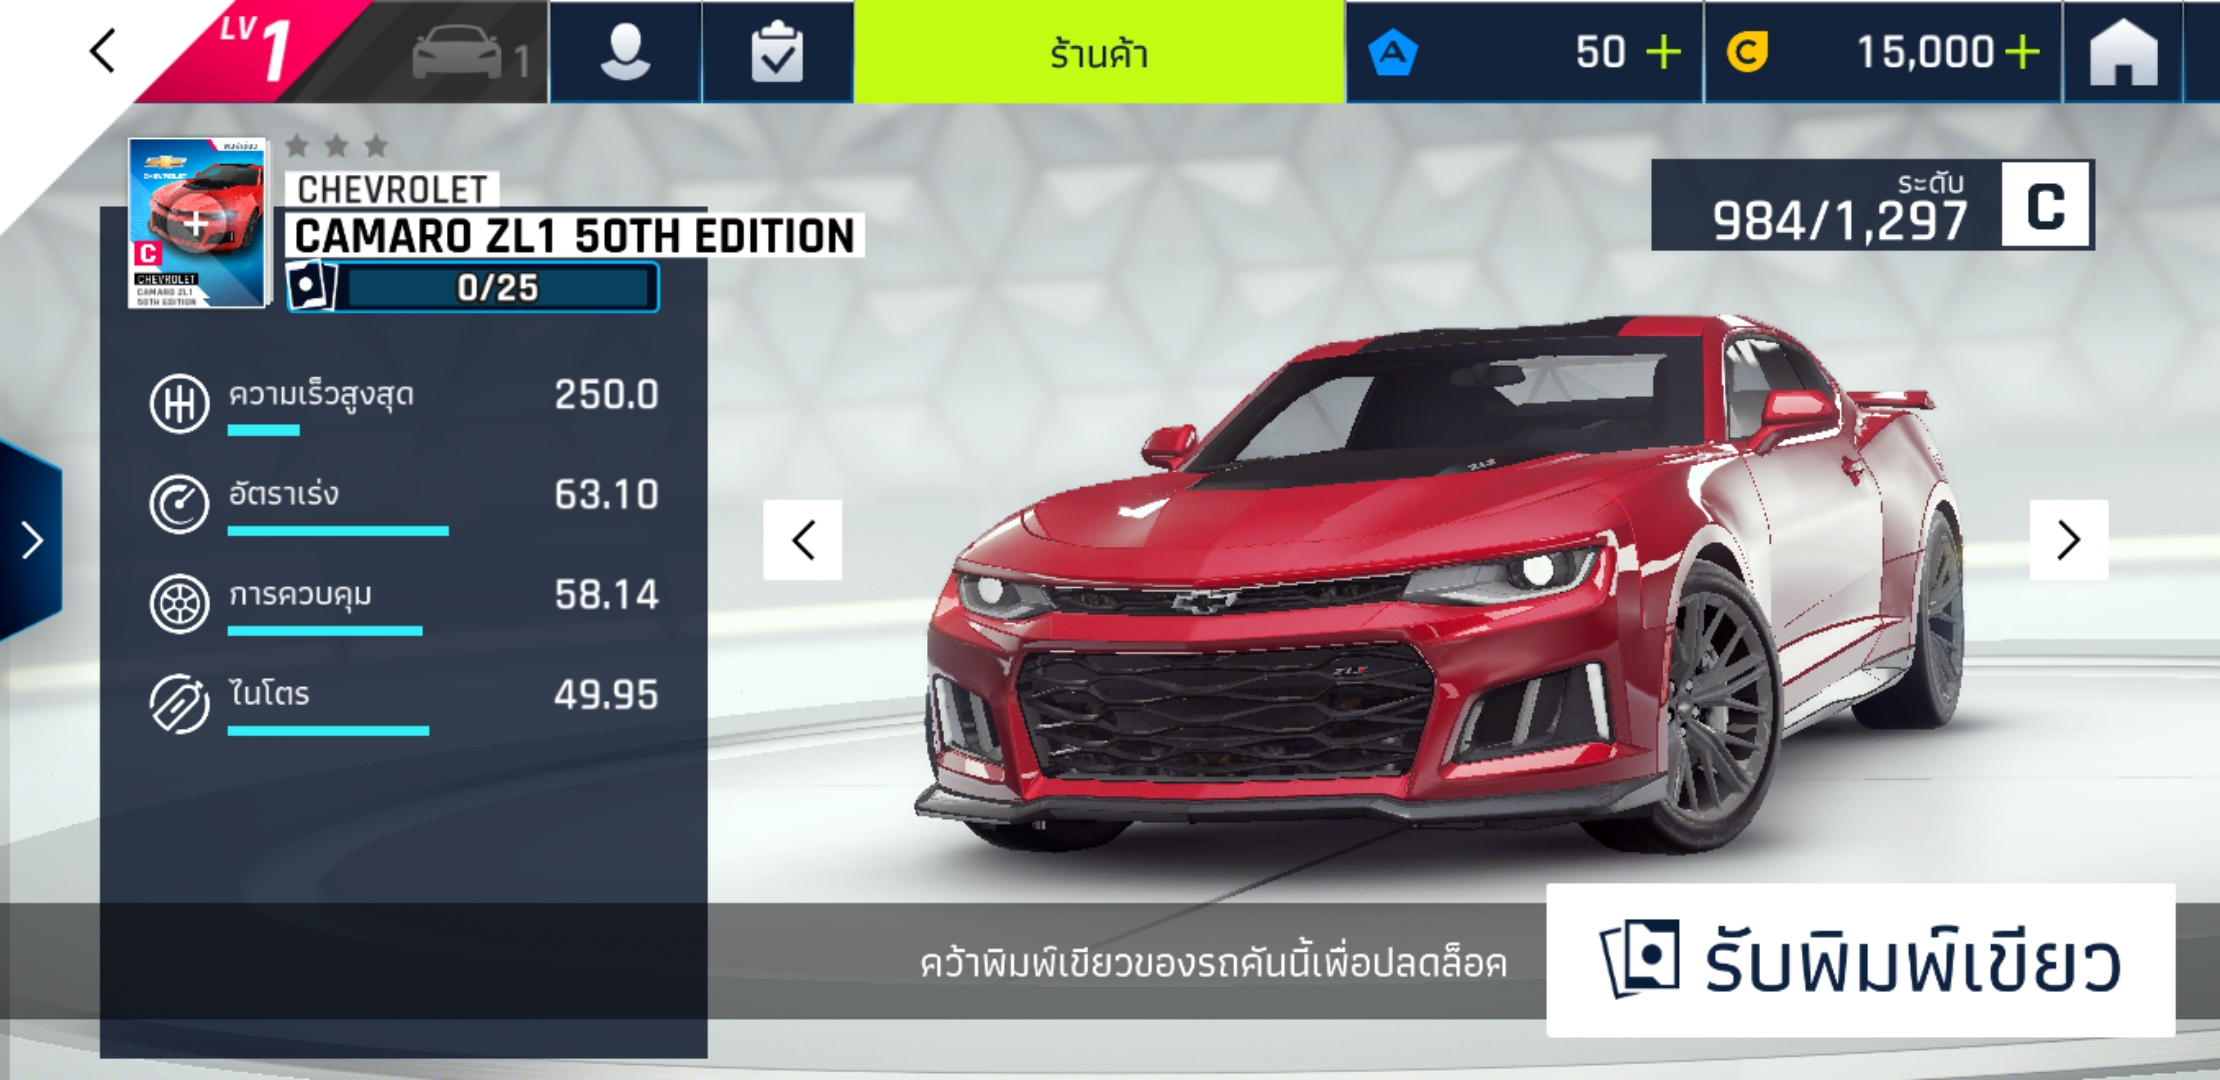 Chevrolet Camaro ZL1 50th Edition (stats)